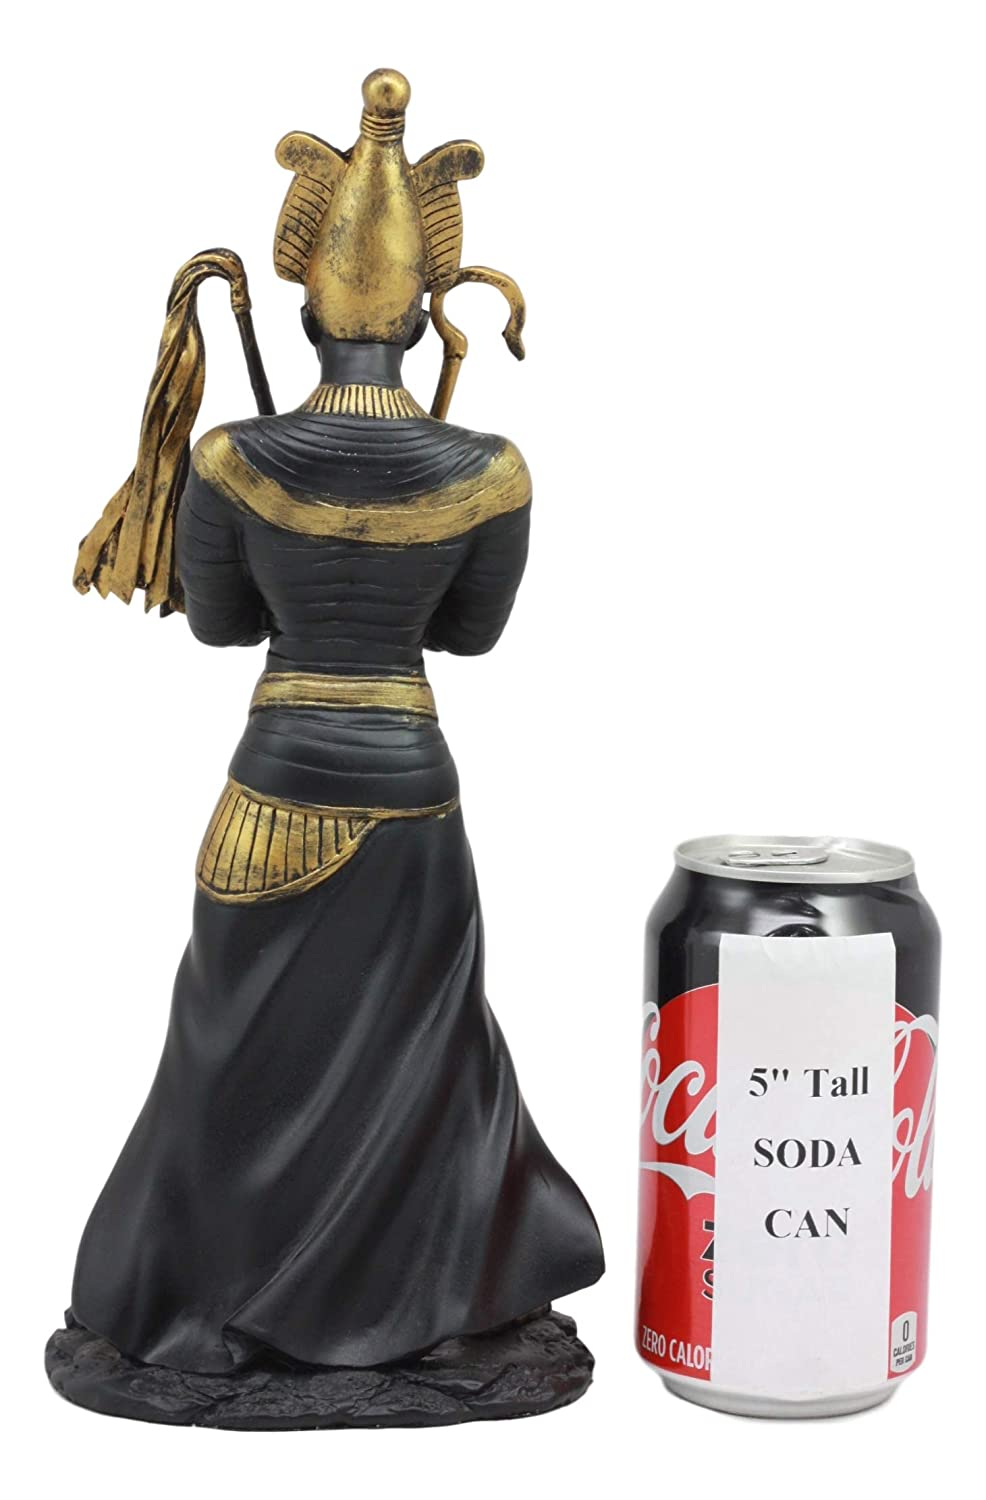 Ebros Egyptian God of The Dead Osiris Holding Crook and Flail Statue In Black And Gold Finish 11.5 Tall Ancient Mythology Decor Figurine Ebros Gift